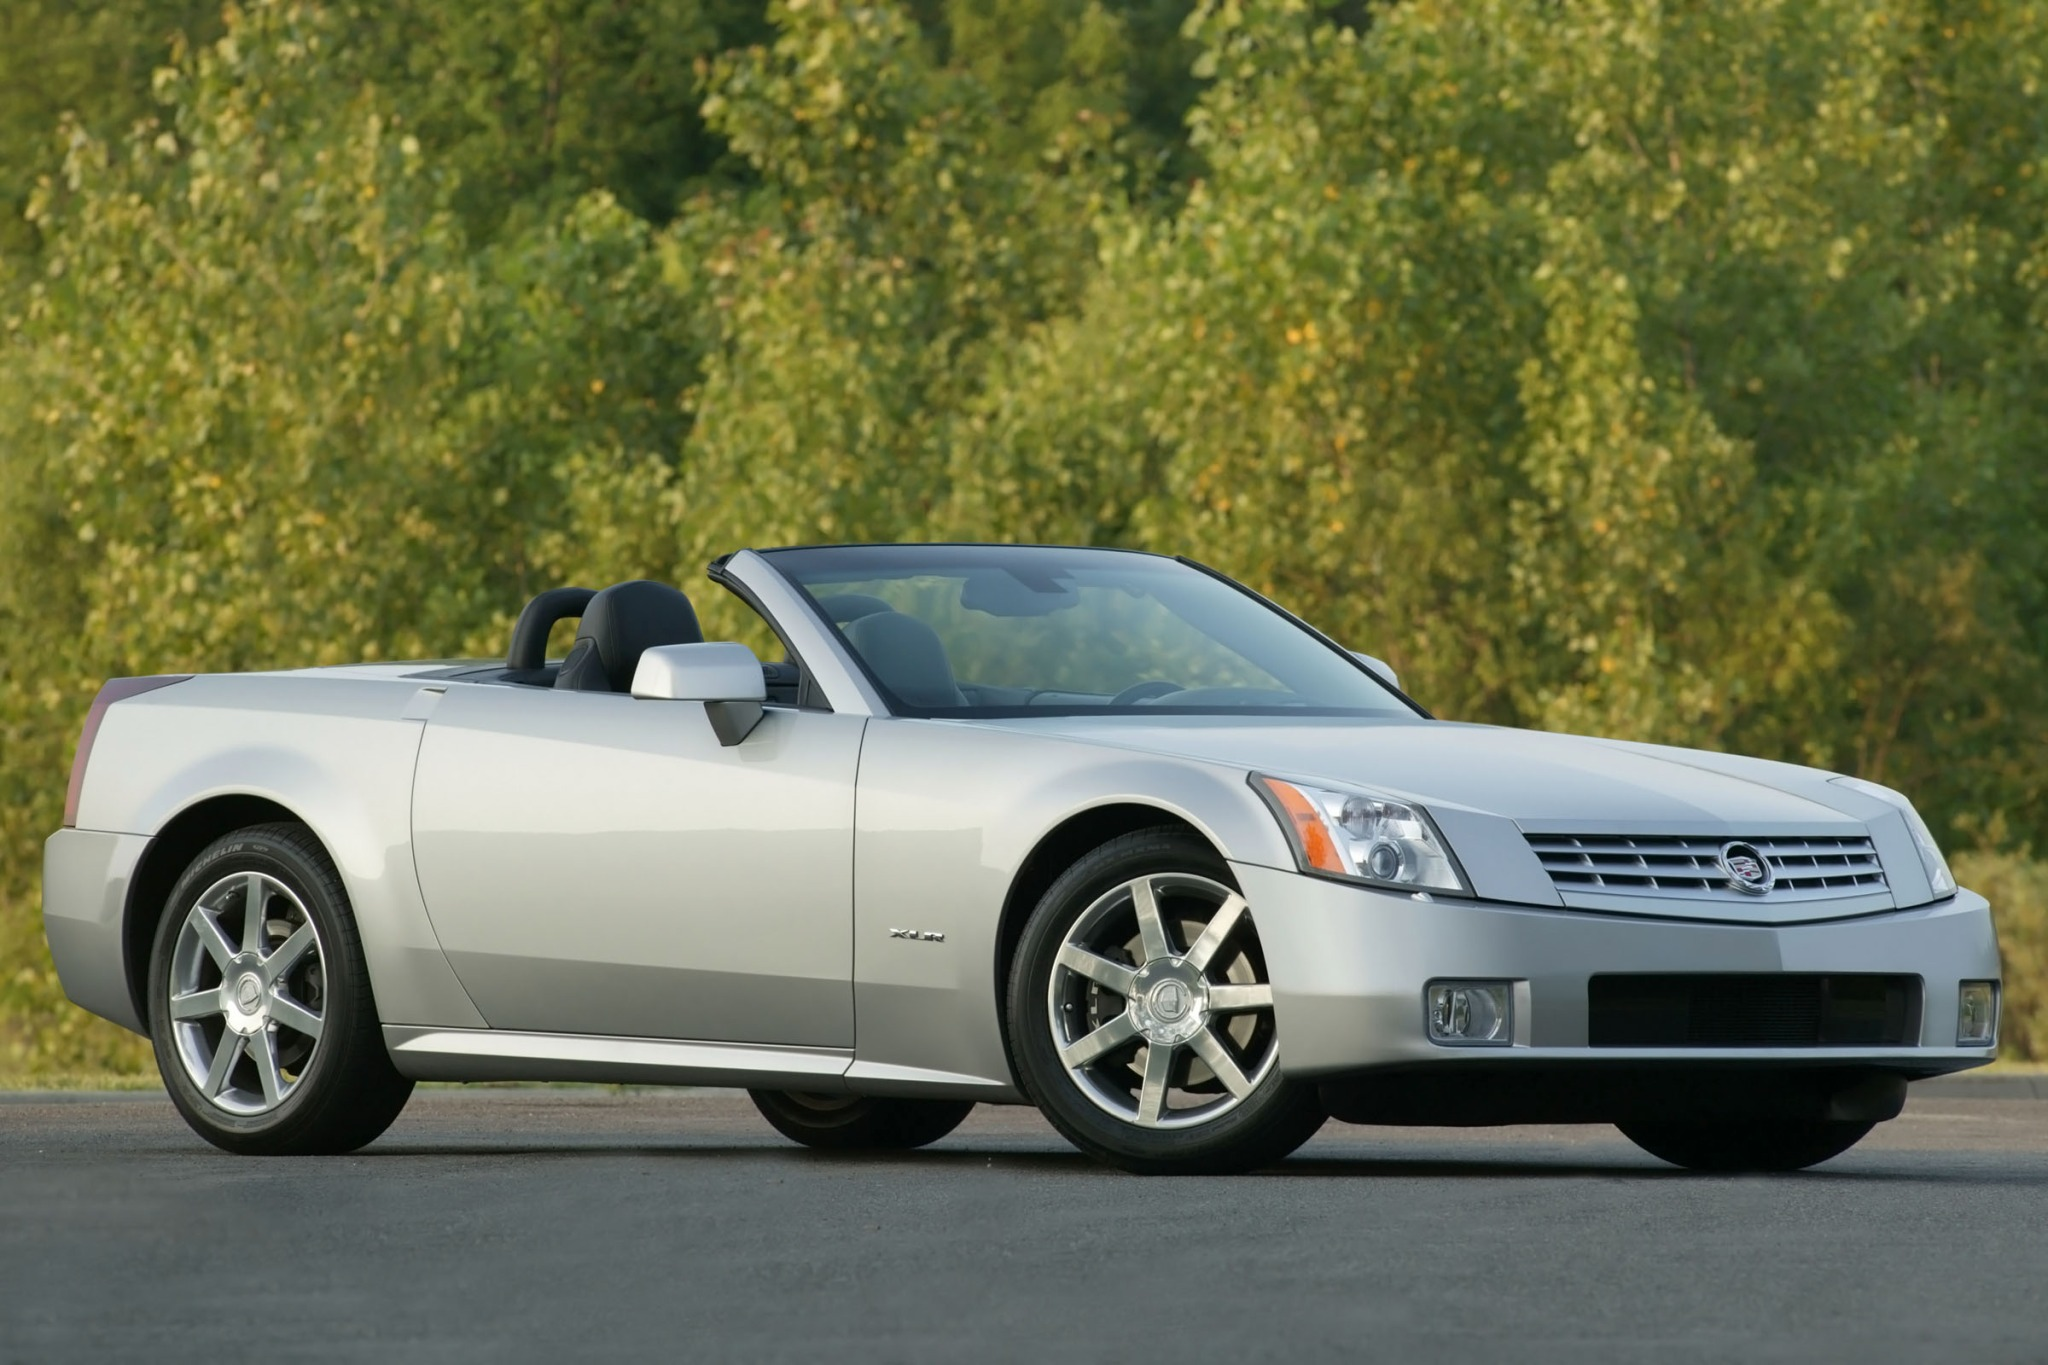 2007 Cadillac XLR Center  interior #1